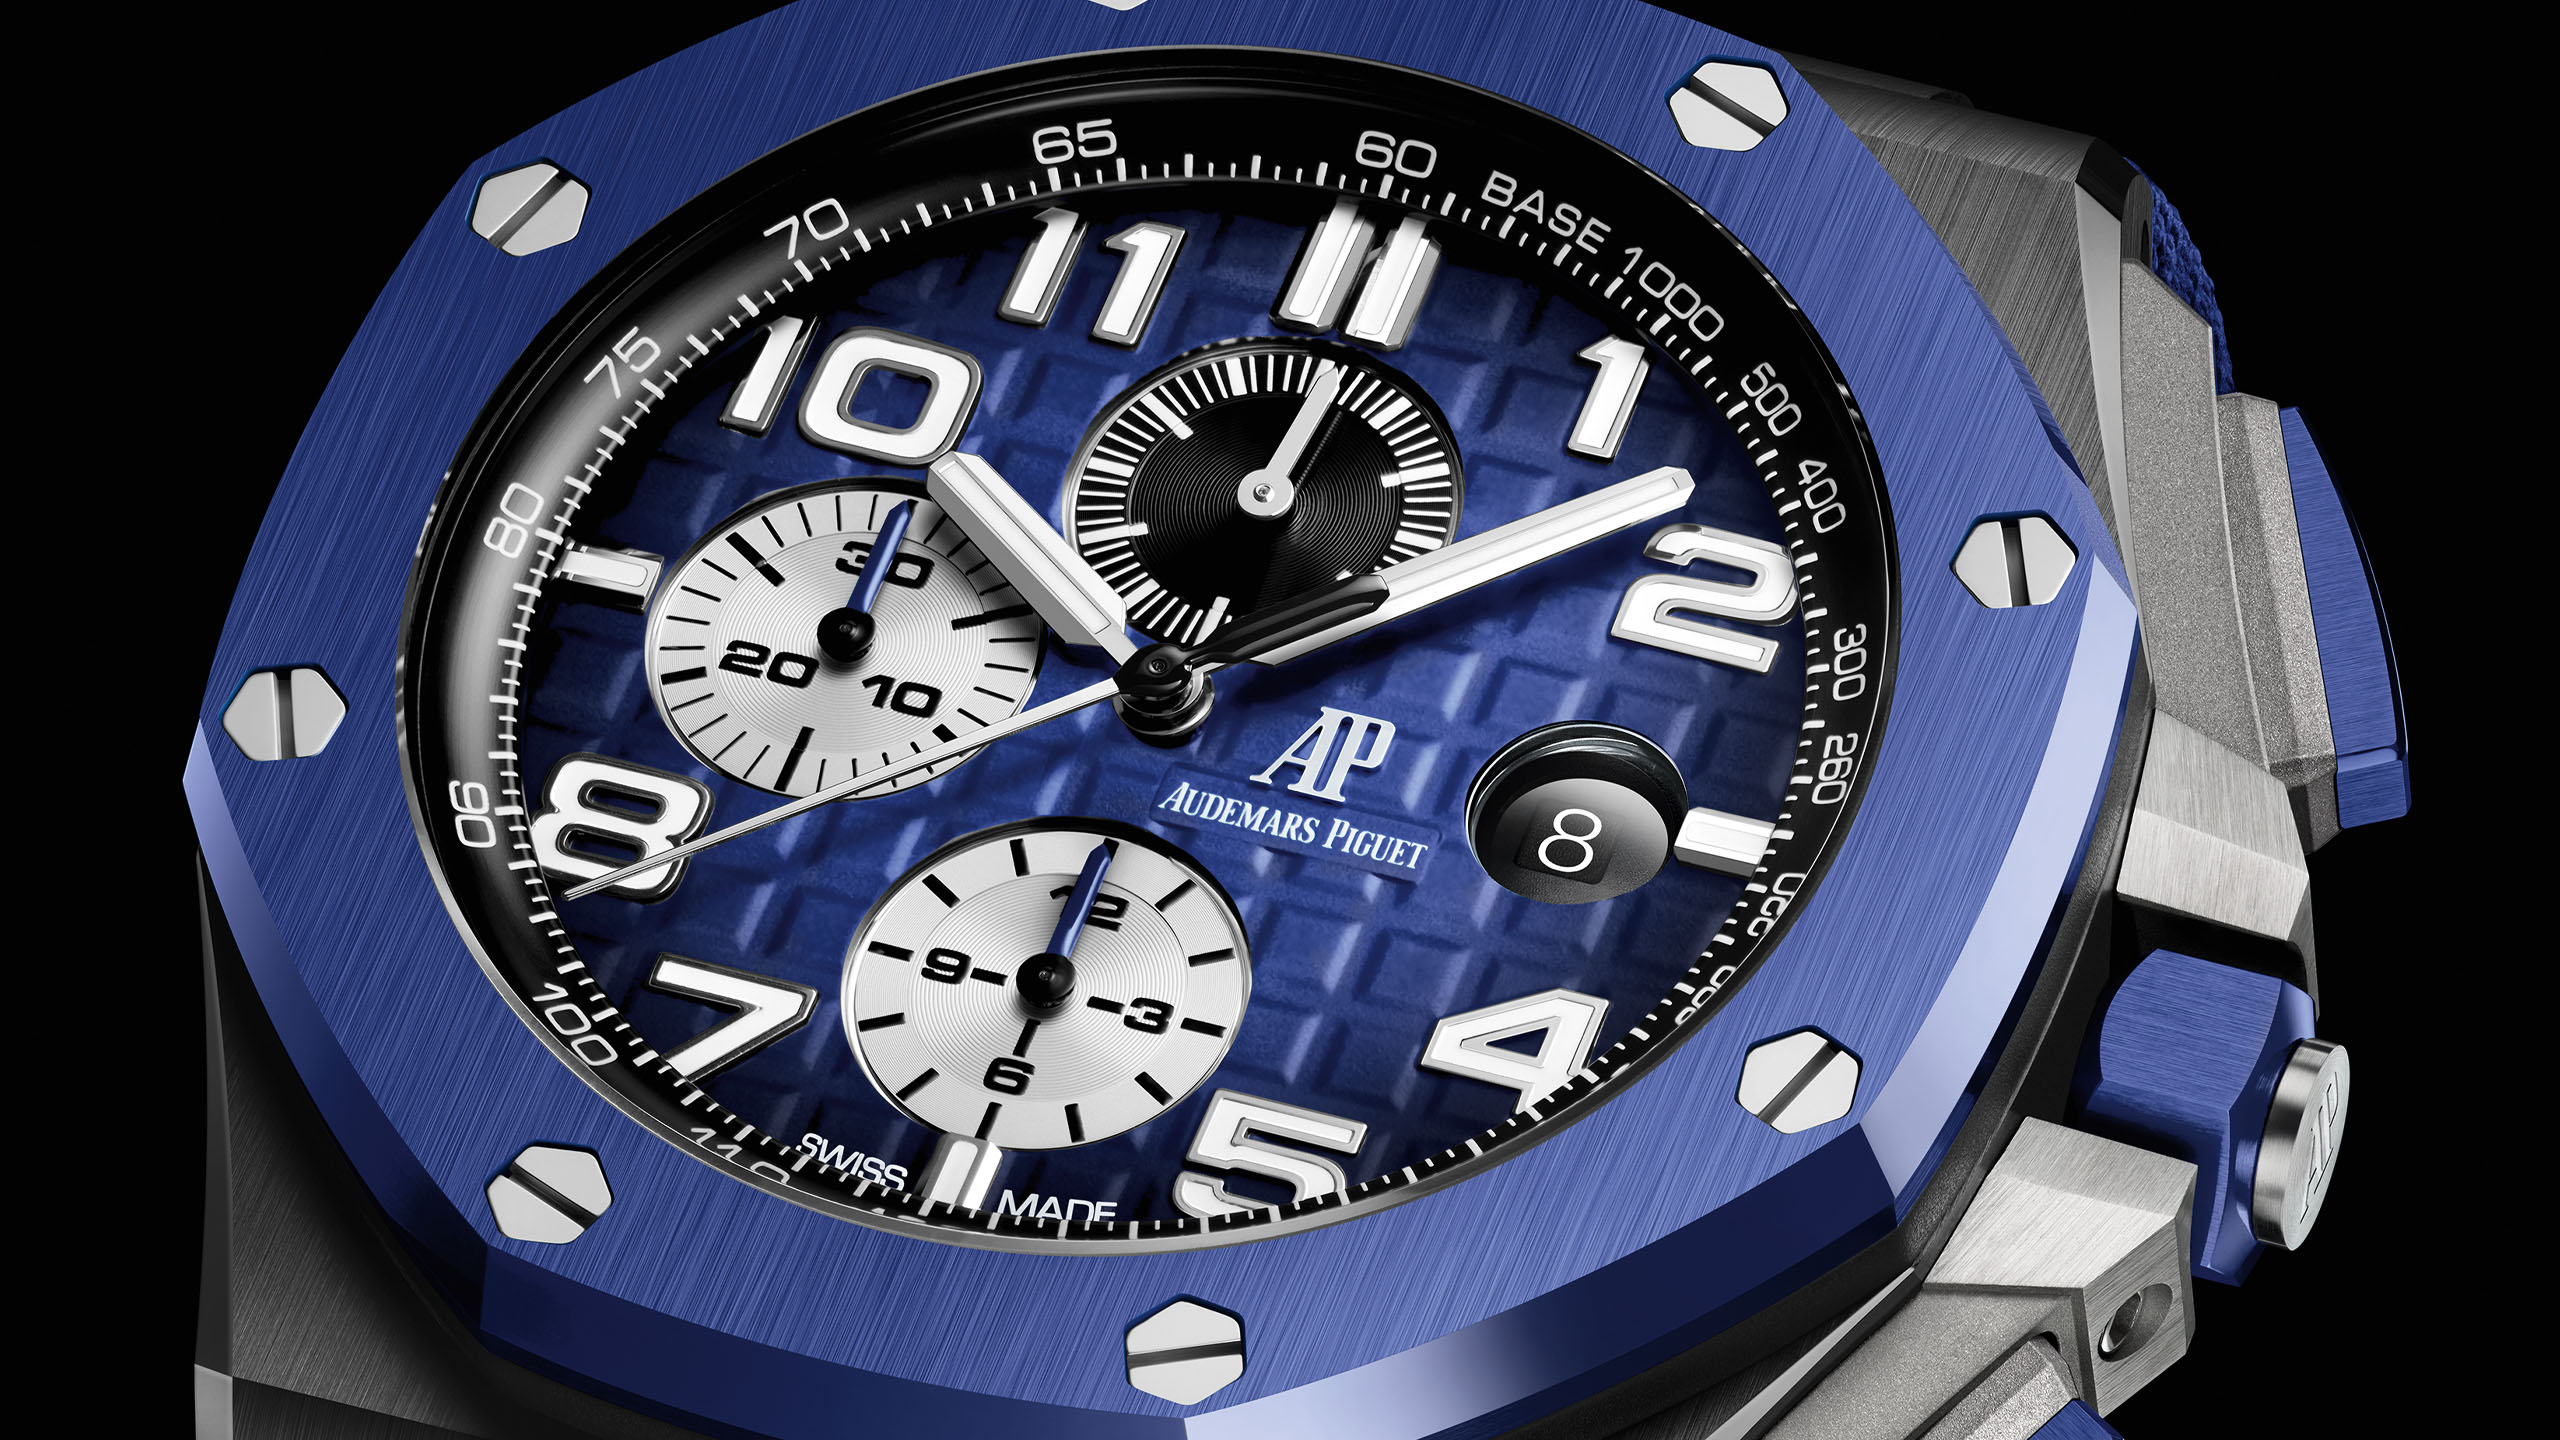 Audemars Piguet Royal Oak Offshore 26405